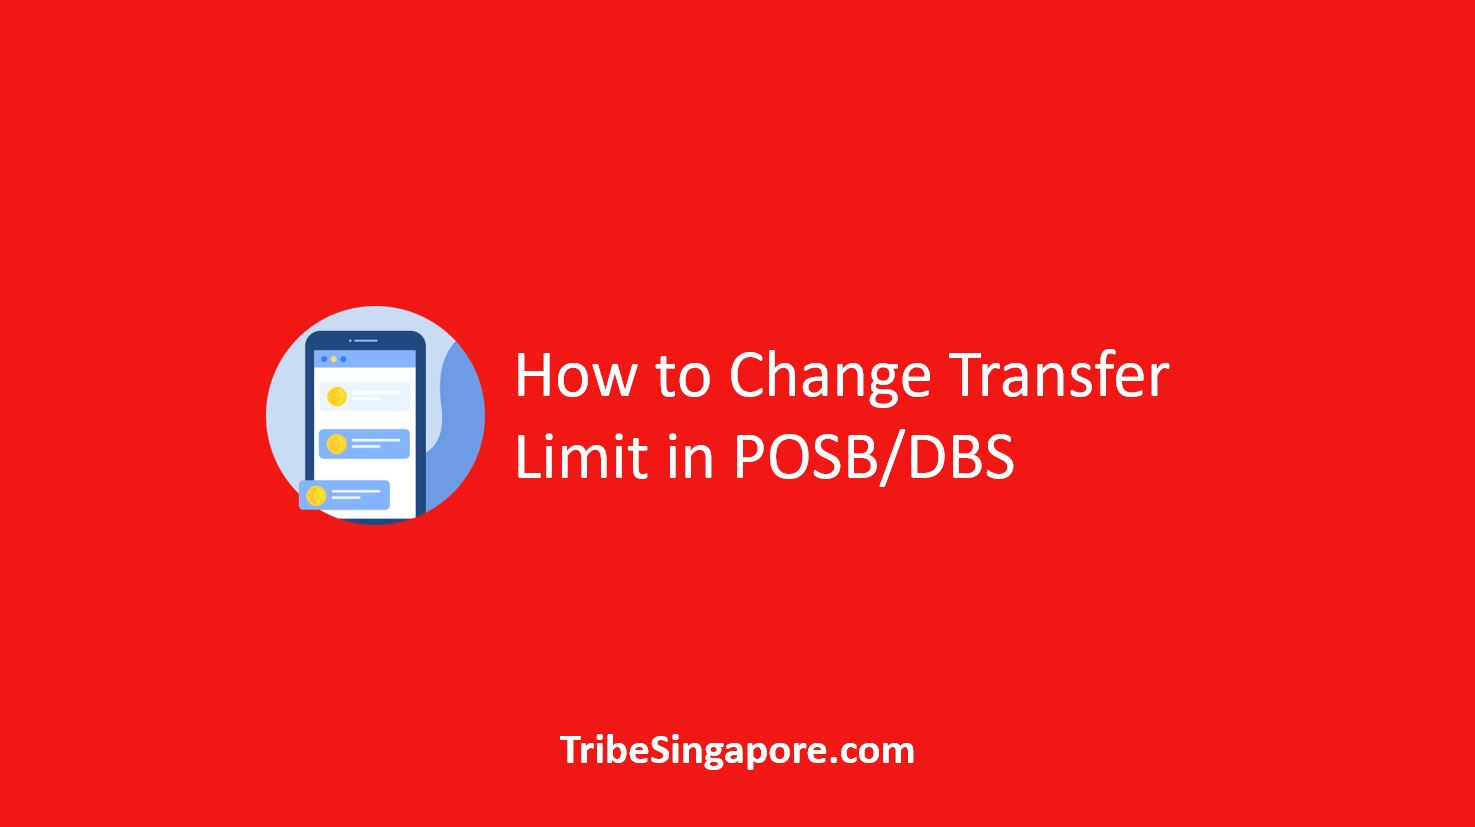 How to Change Transfer Limit in POSB/DBS